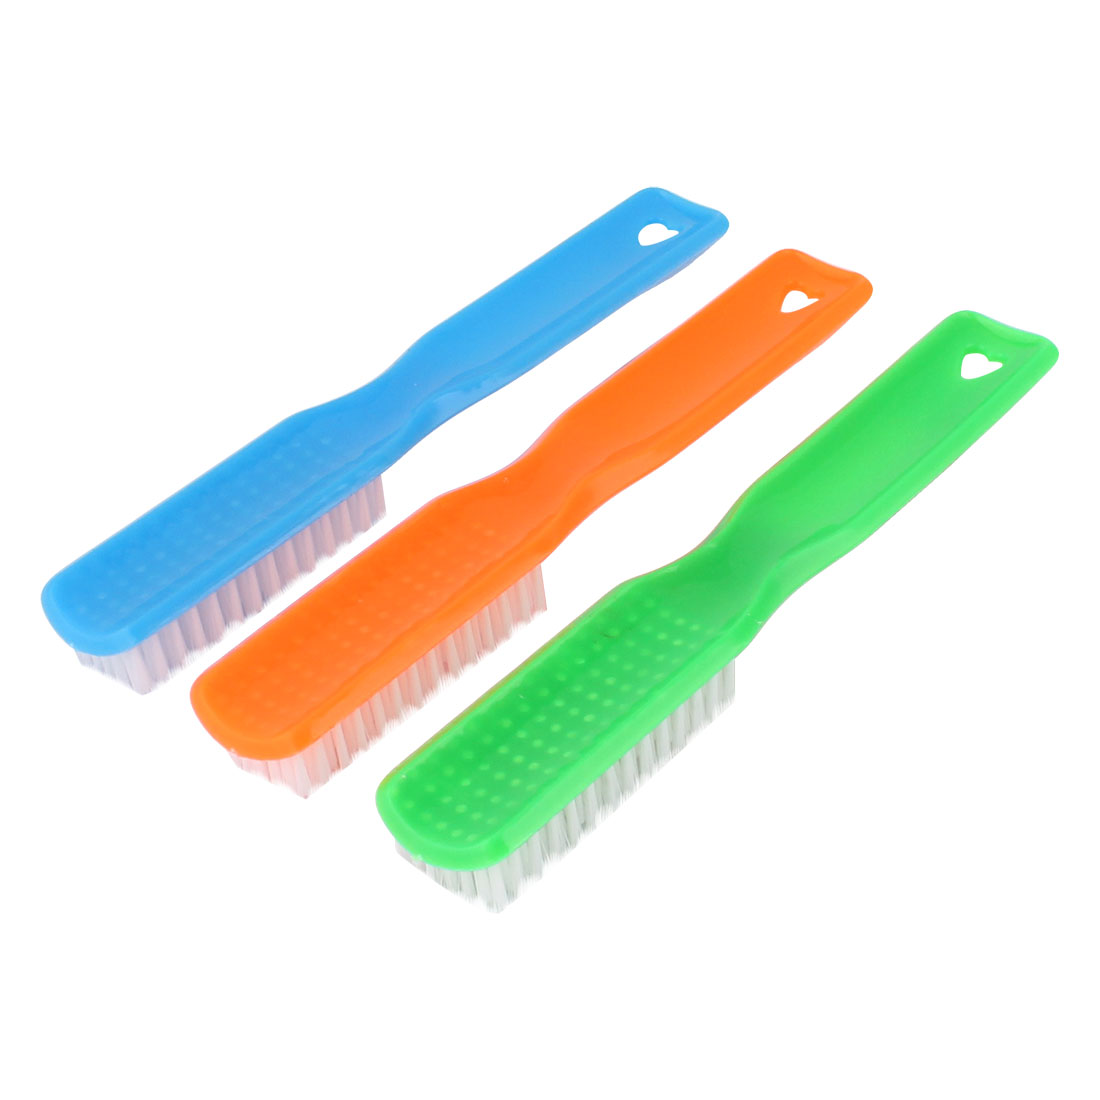 Home Bathroom Plastic Handle Clothes Shoes Scrubbing Brush Cleaning Tool 3pcs